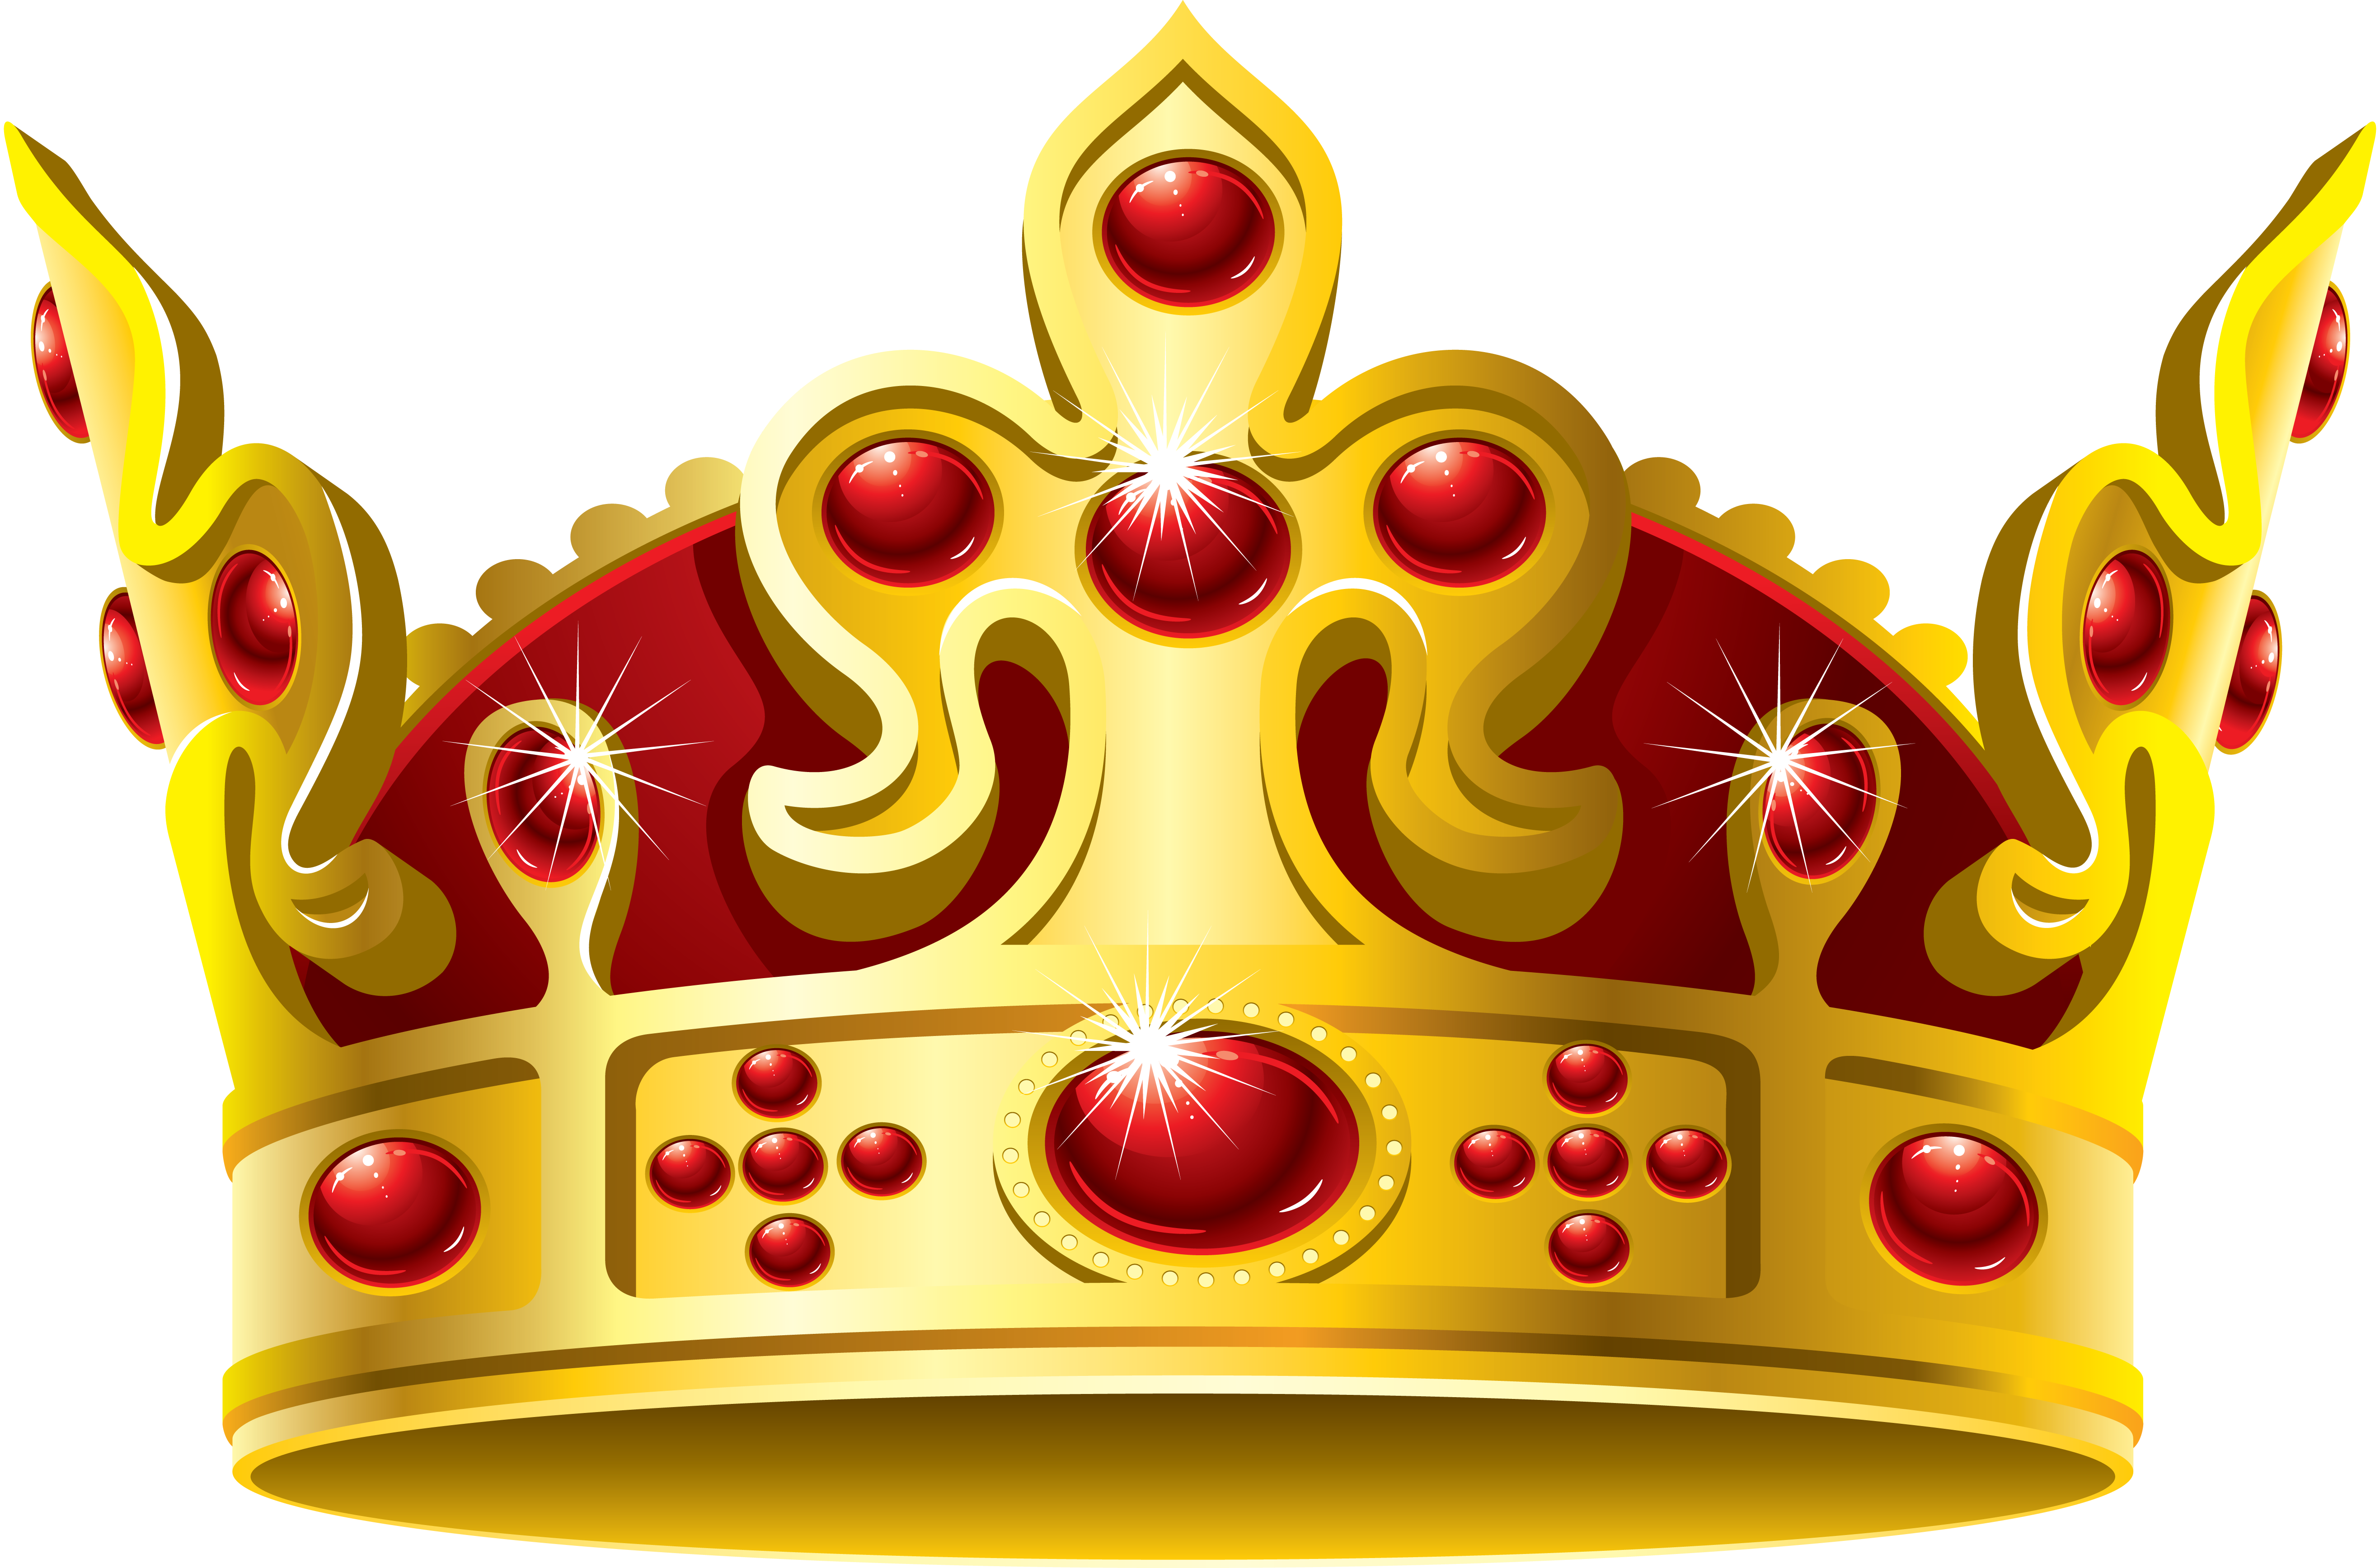 Gold prince crown clipart clipart freeuse Gold Crown Red Stone PNG Image - PurePNG | Free transparent CC0 PNG ... clipart freeuse